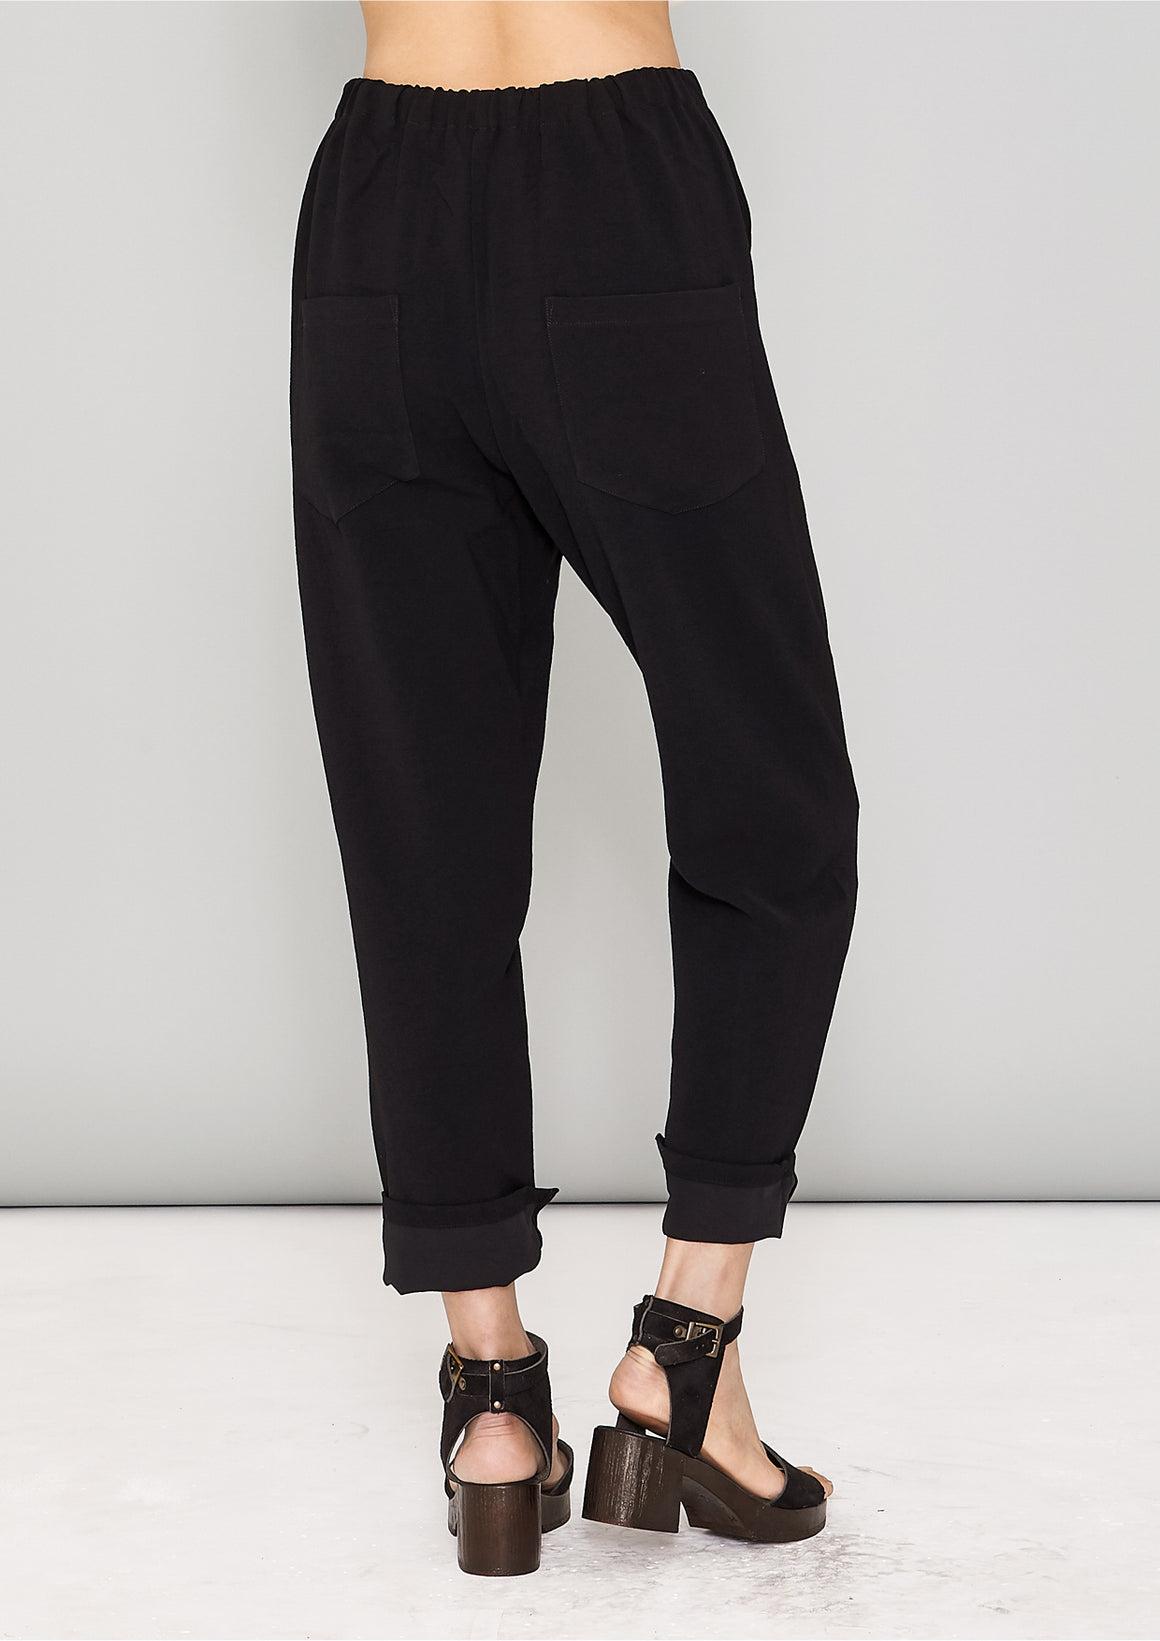 PANTS STRETCH HIGH WAIST - black plain - BERENIK